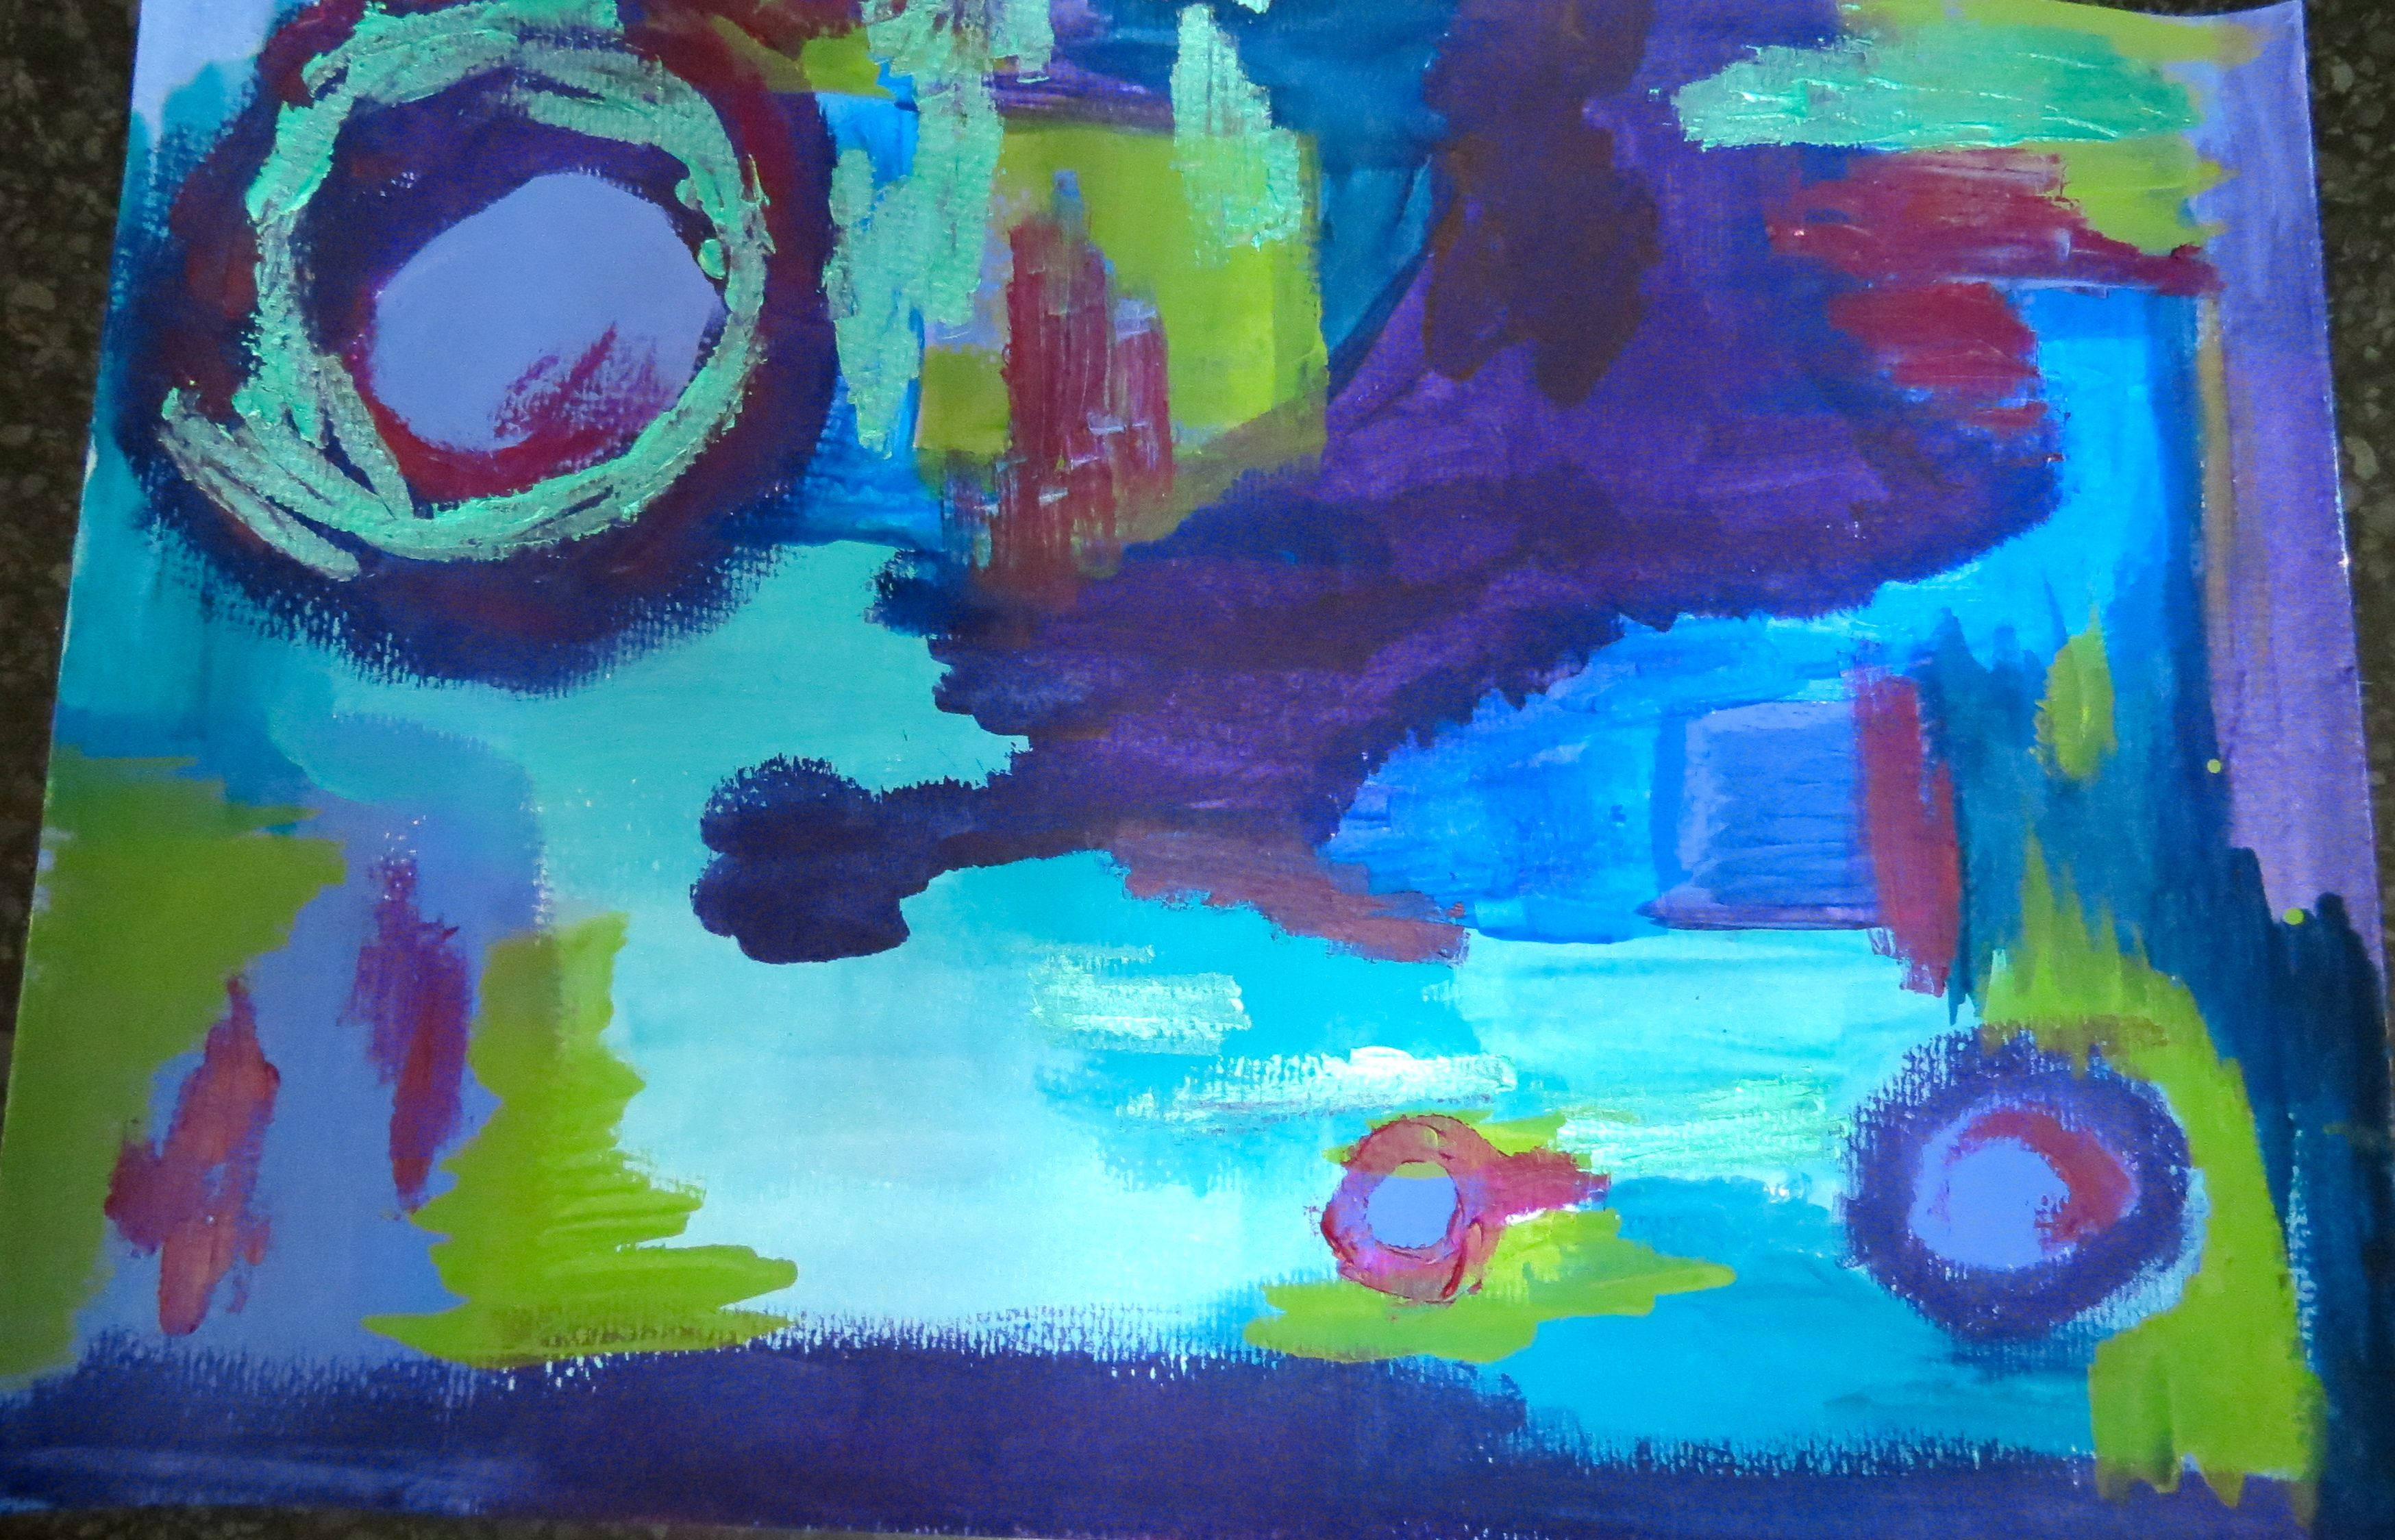 playing with colour by kat gottke,, 1st feb 2015